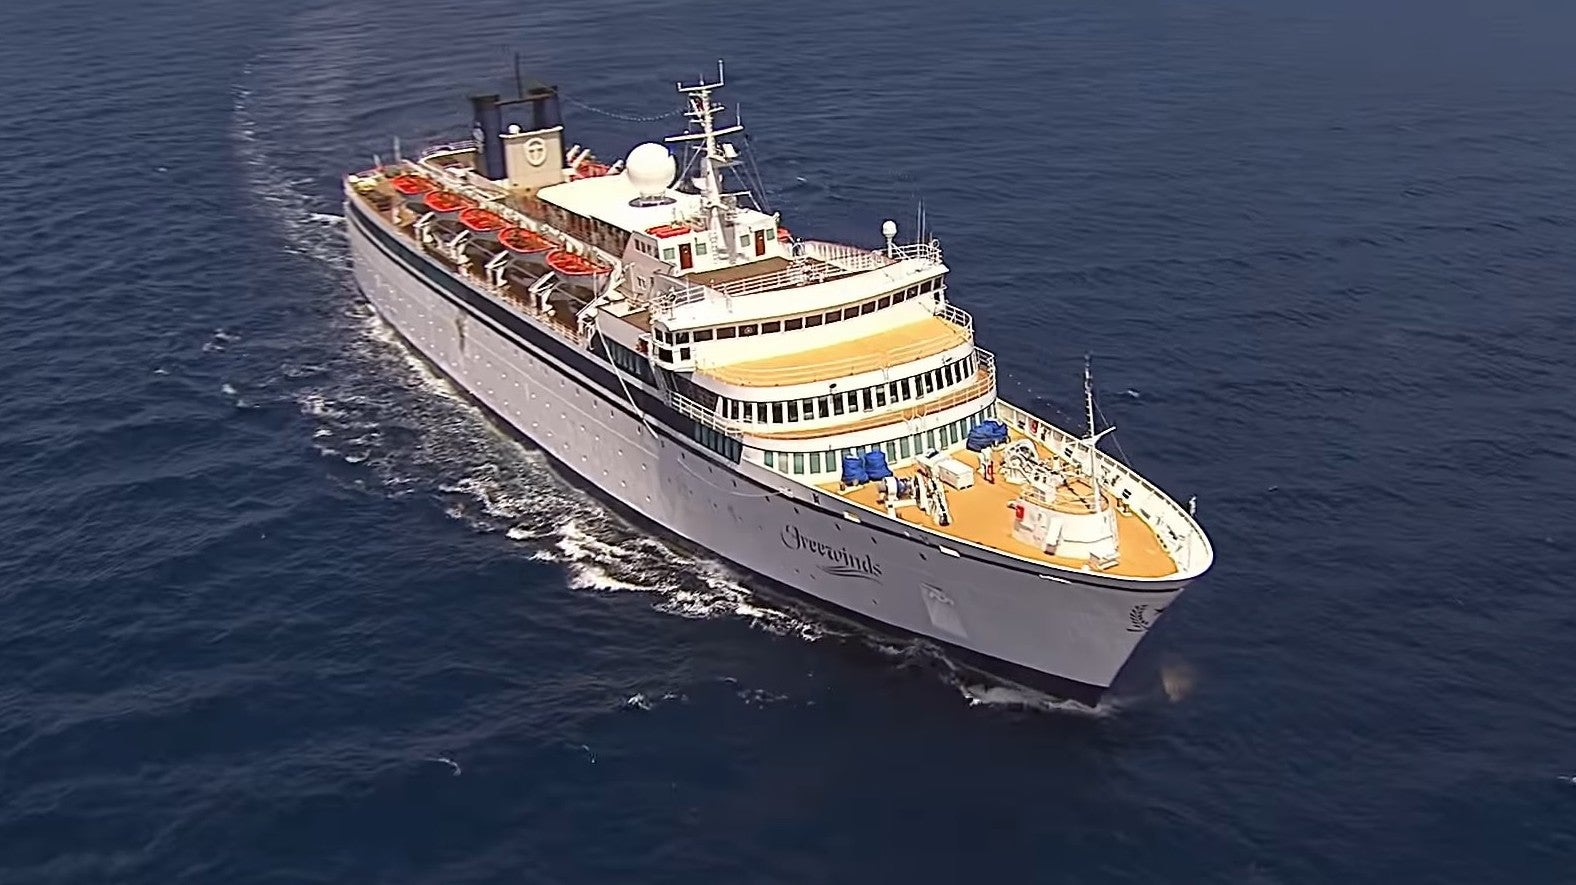 Nearly 300 Quarantined On Reported Church Of Scientology Cruise Ship For Fear Of Measles Outbreak